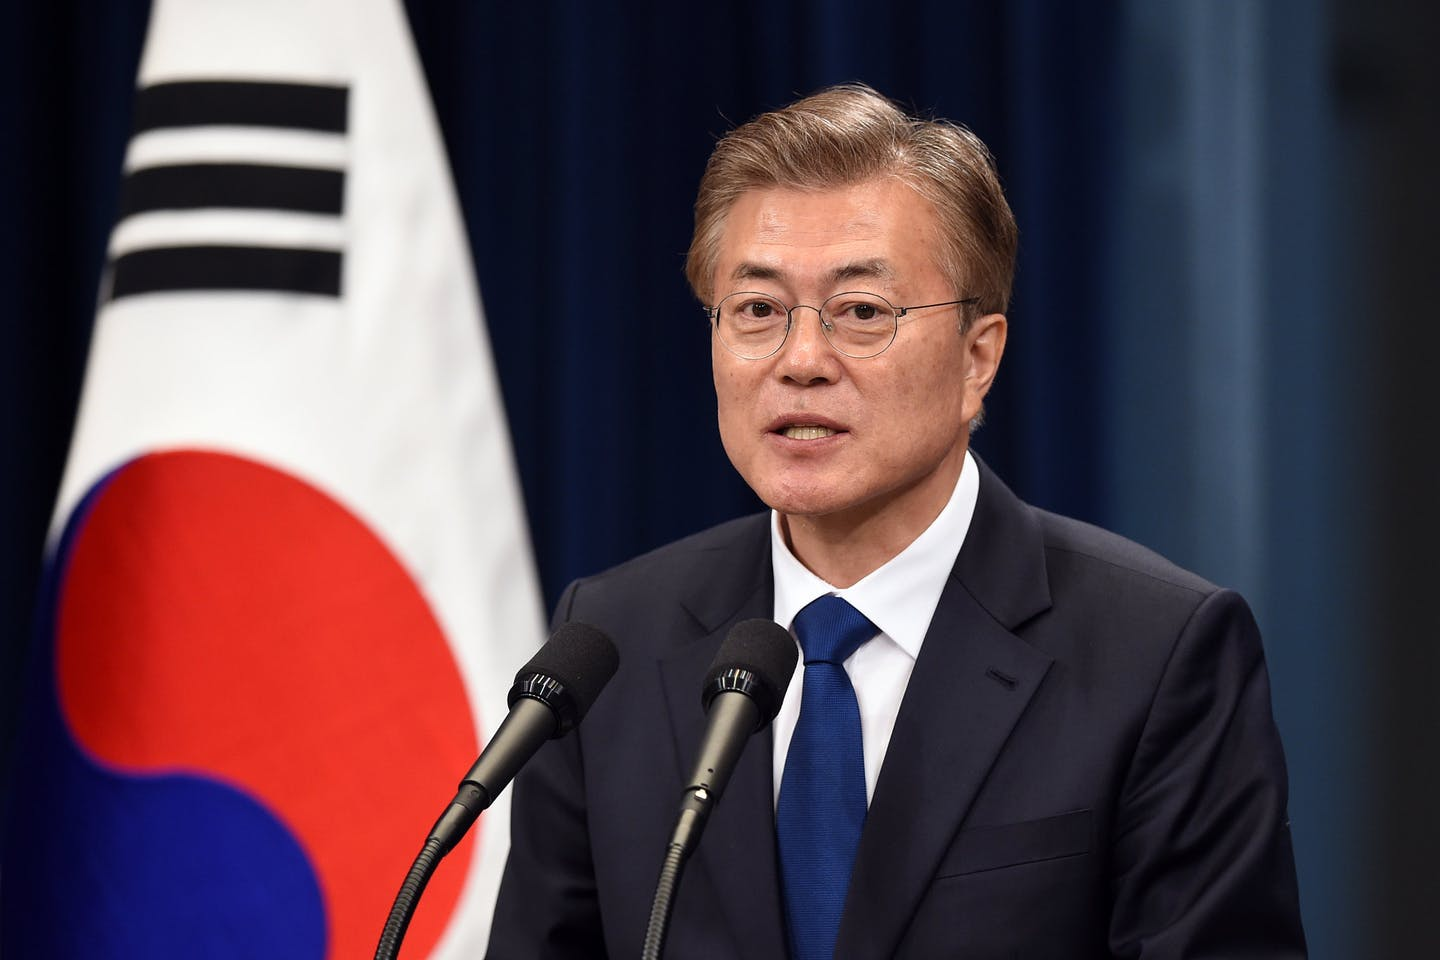 President Moon Jae-in, coal phase-out